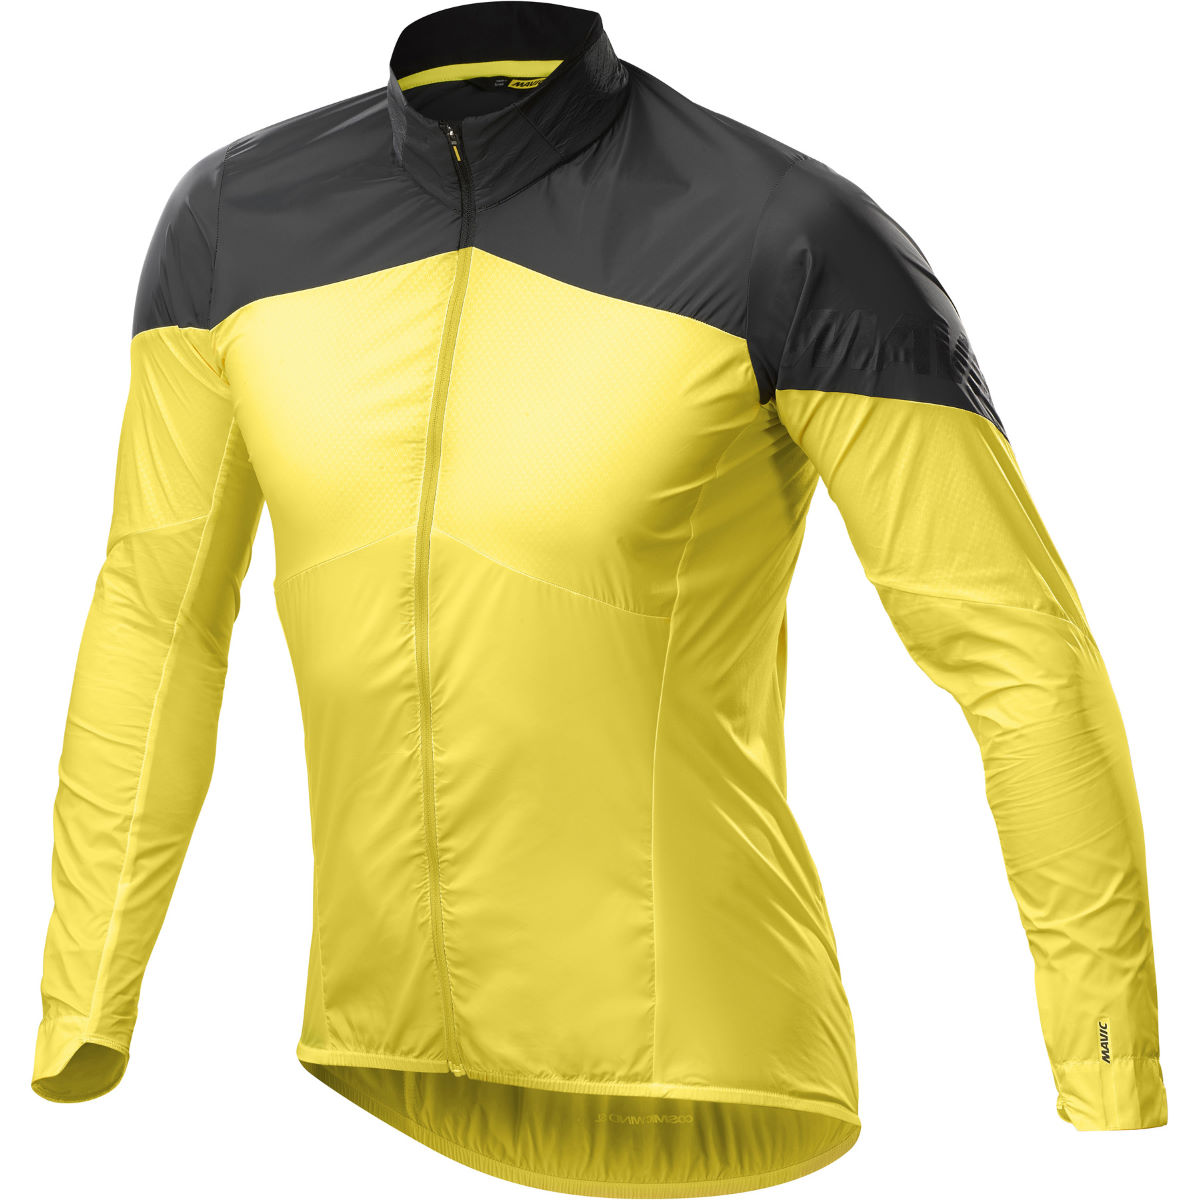 Veste Mavic Cosmic Wind SL - S Yellow Mavic/Black Vestes